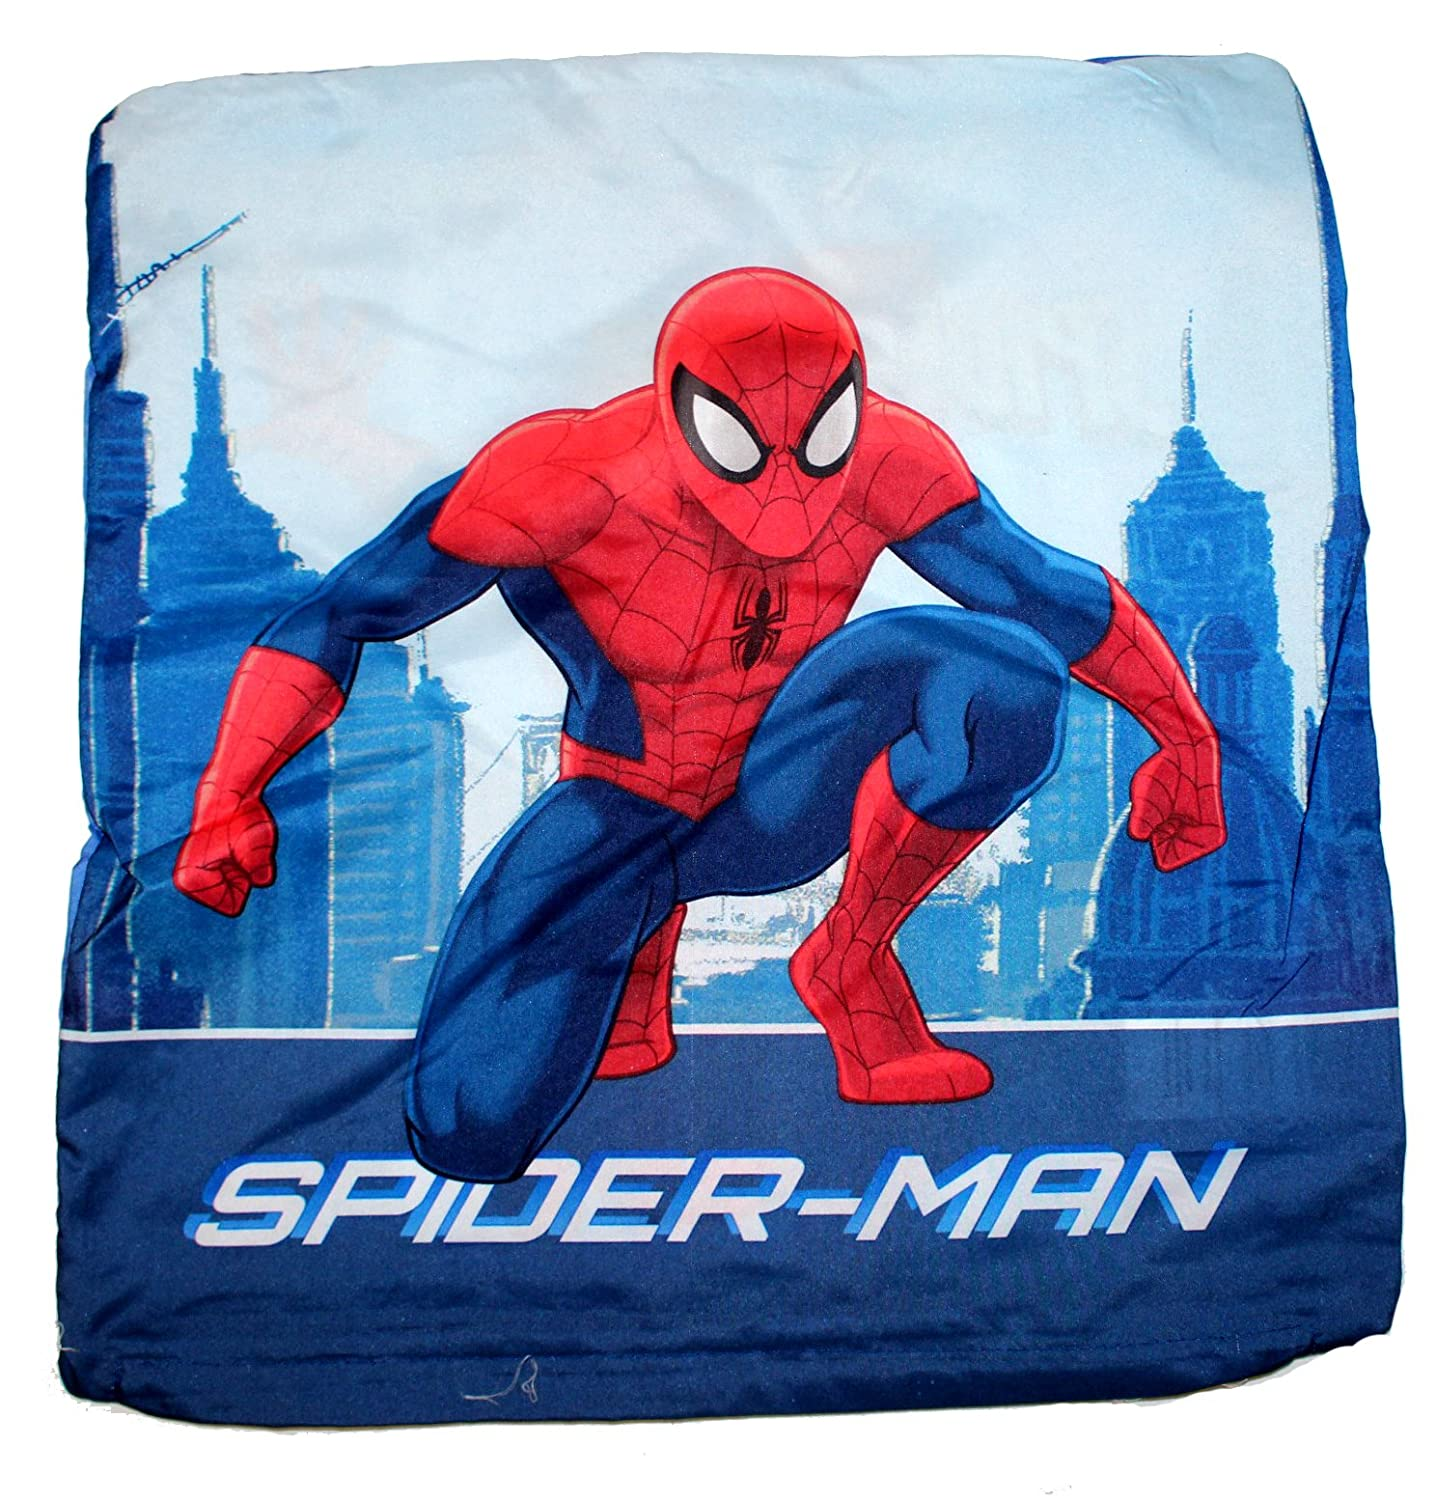 Marvel Spider-Man - Funda de cojín (40 x 40 cm): Amazon.es ...